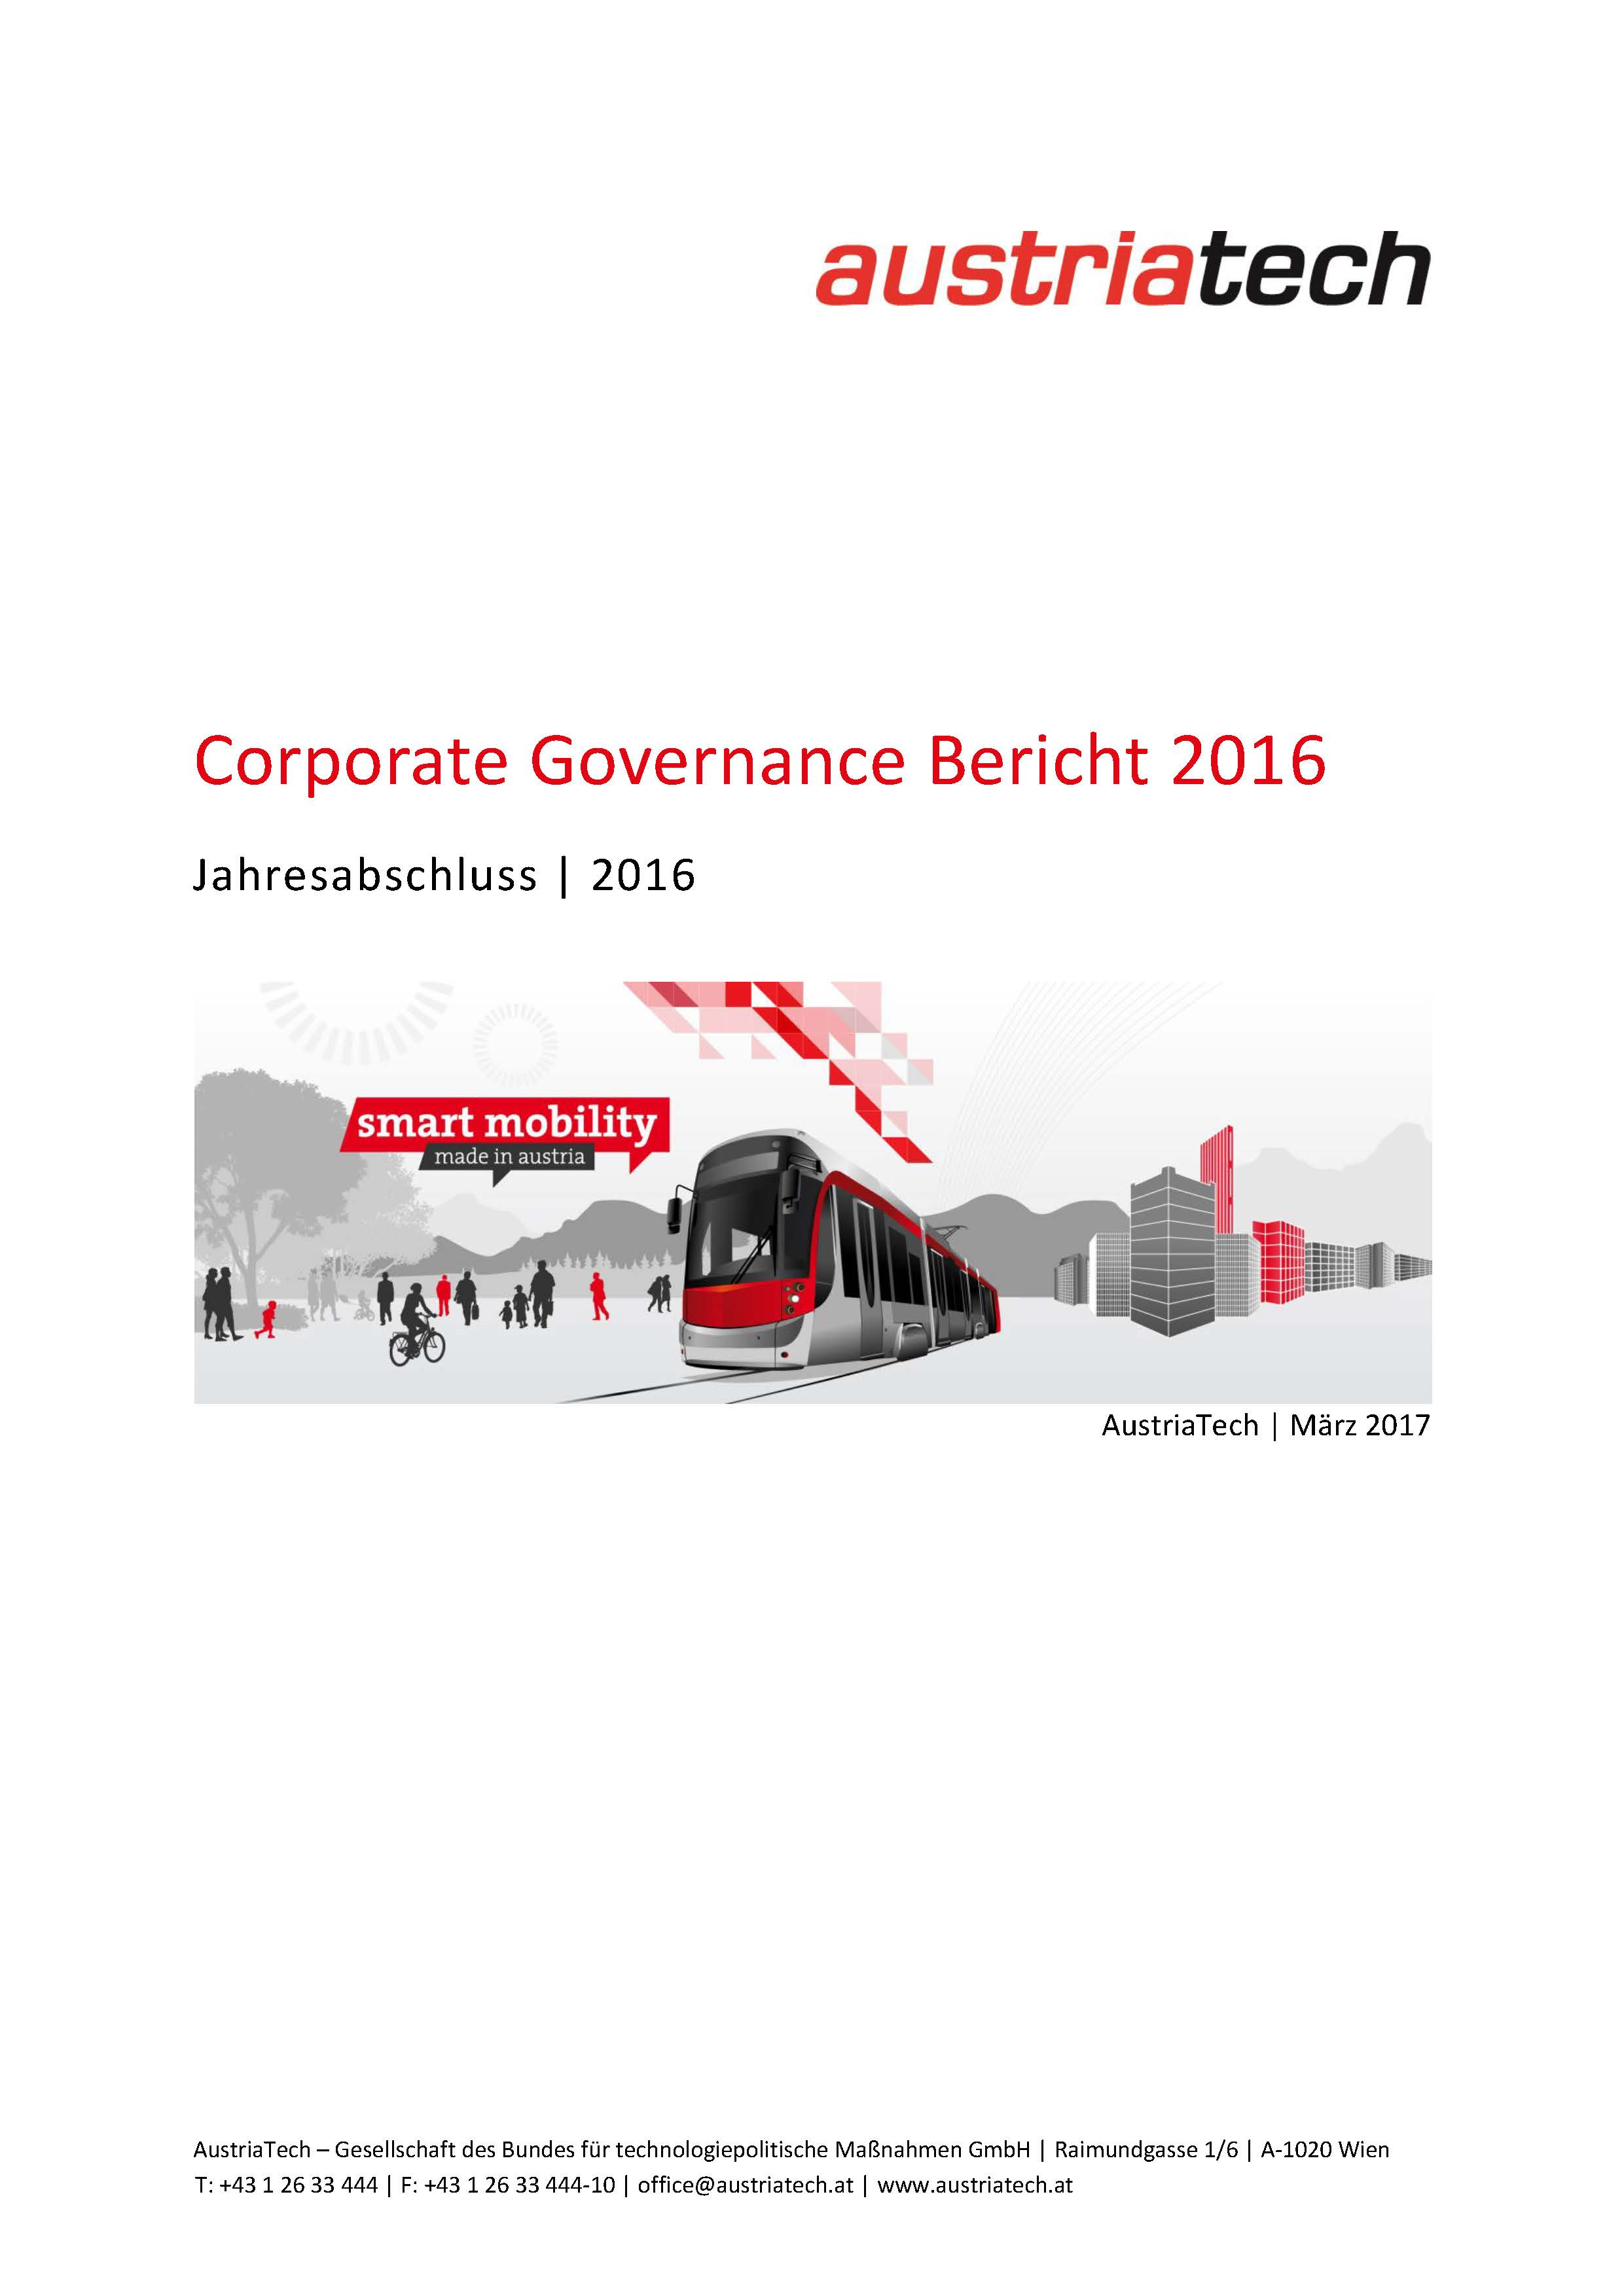 AustriaTech Corporate Governance 2016